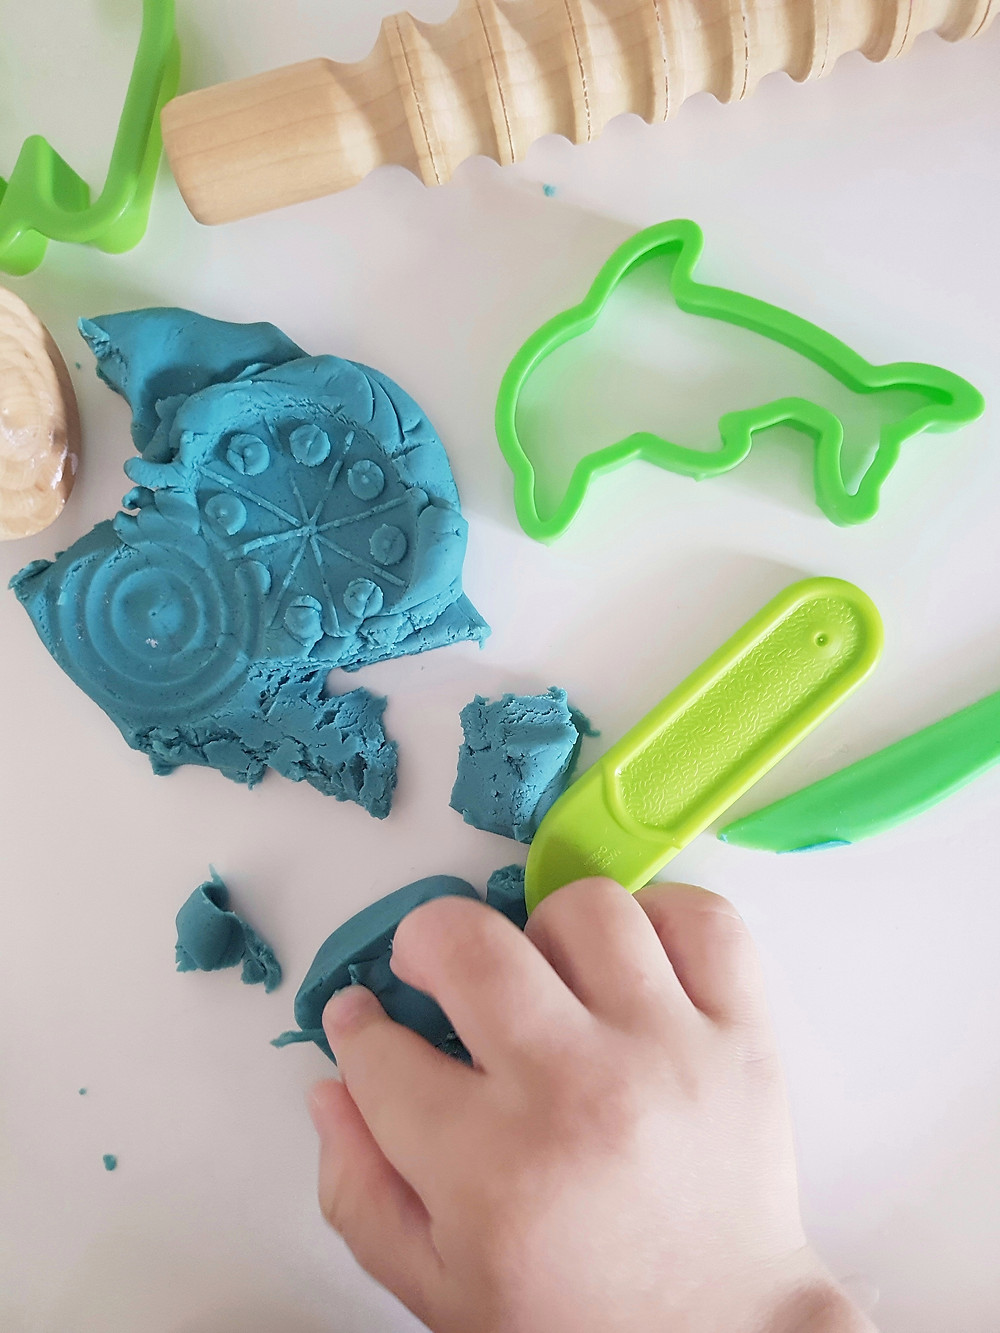 blue playdough with wooden rolling pin and green cutters